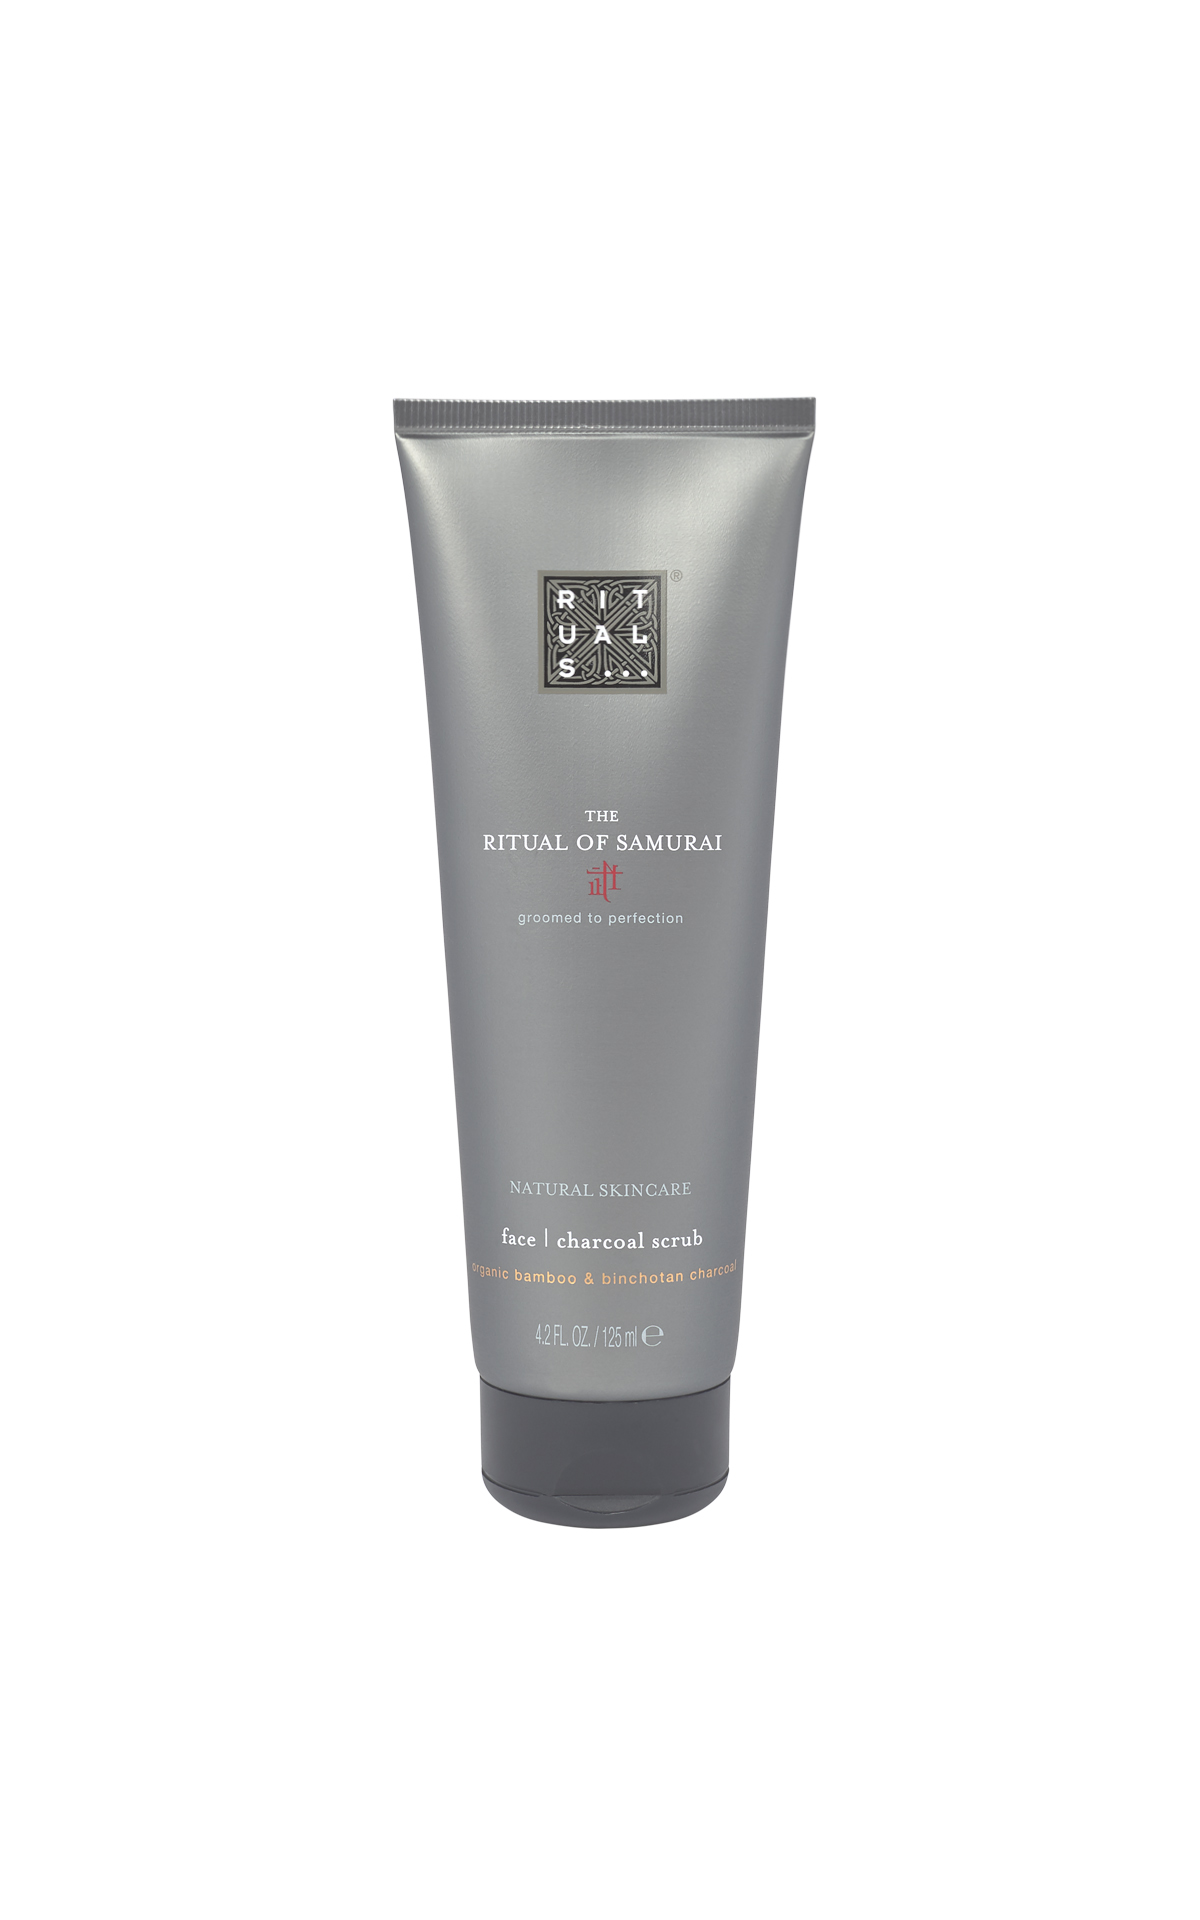 Men's Samurai facial scrub from Rituals